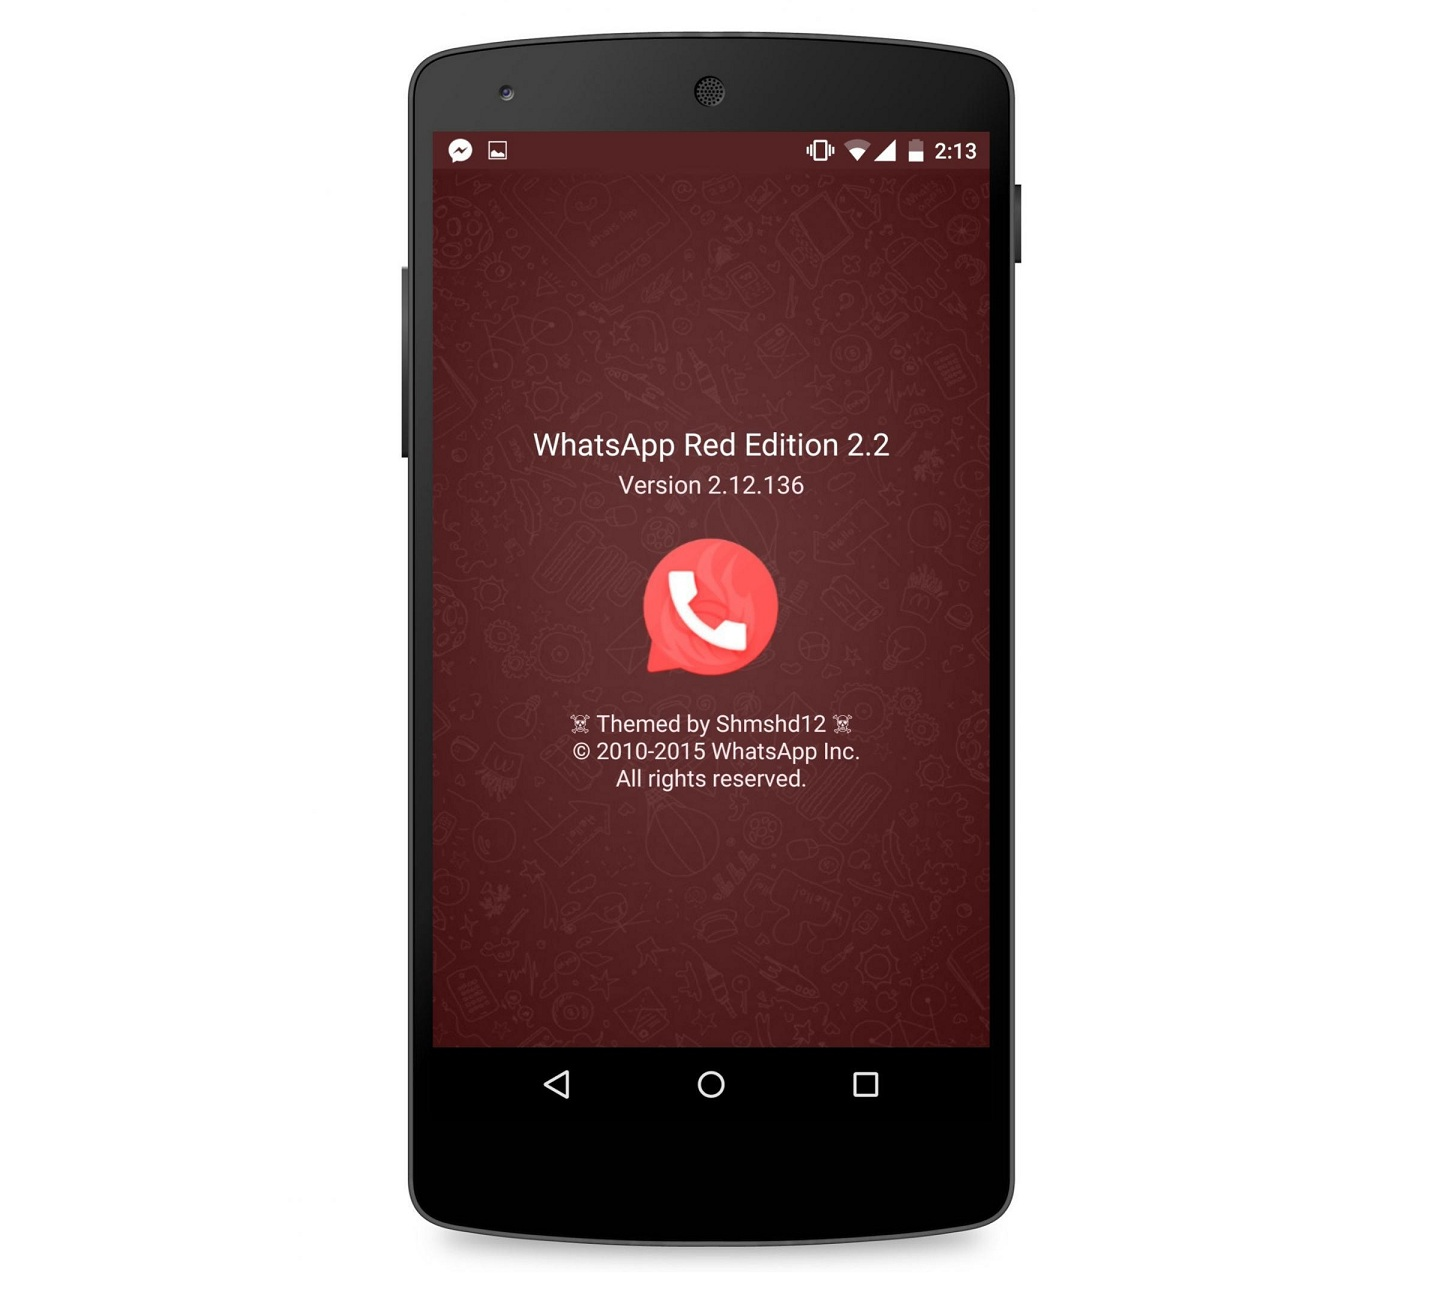 WhatsApp Red Edition 2.2